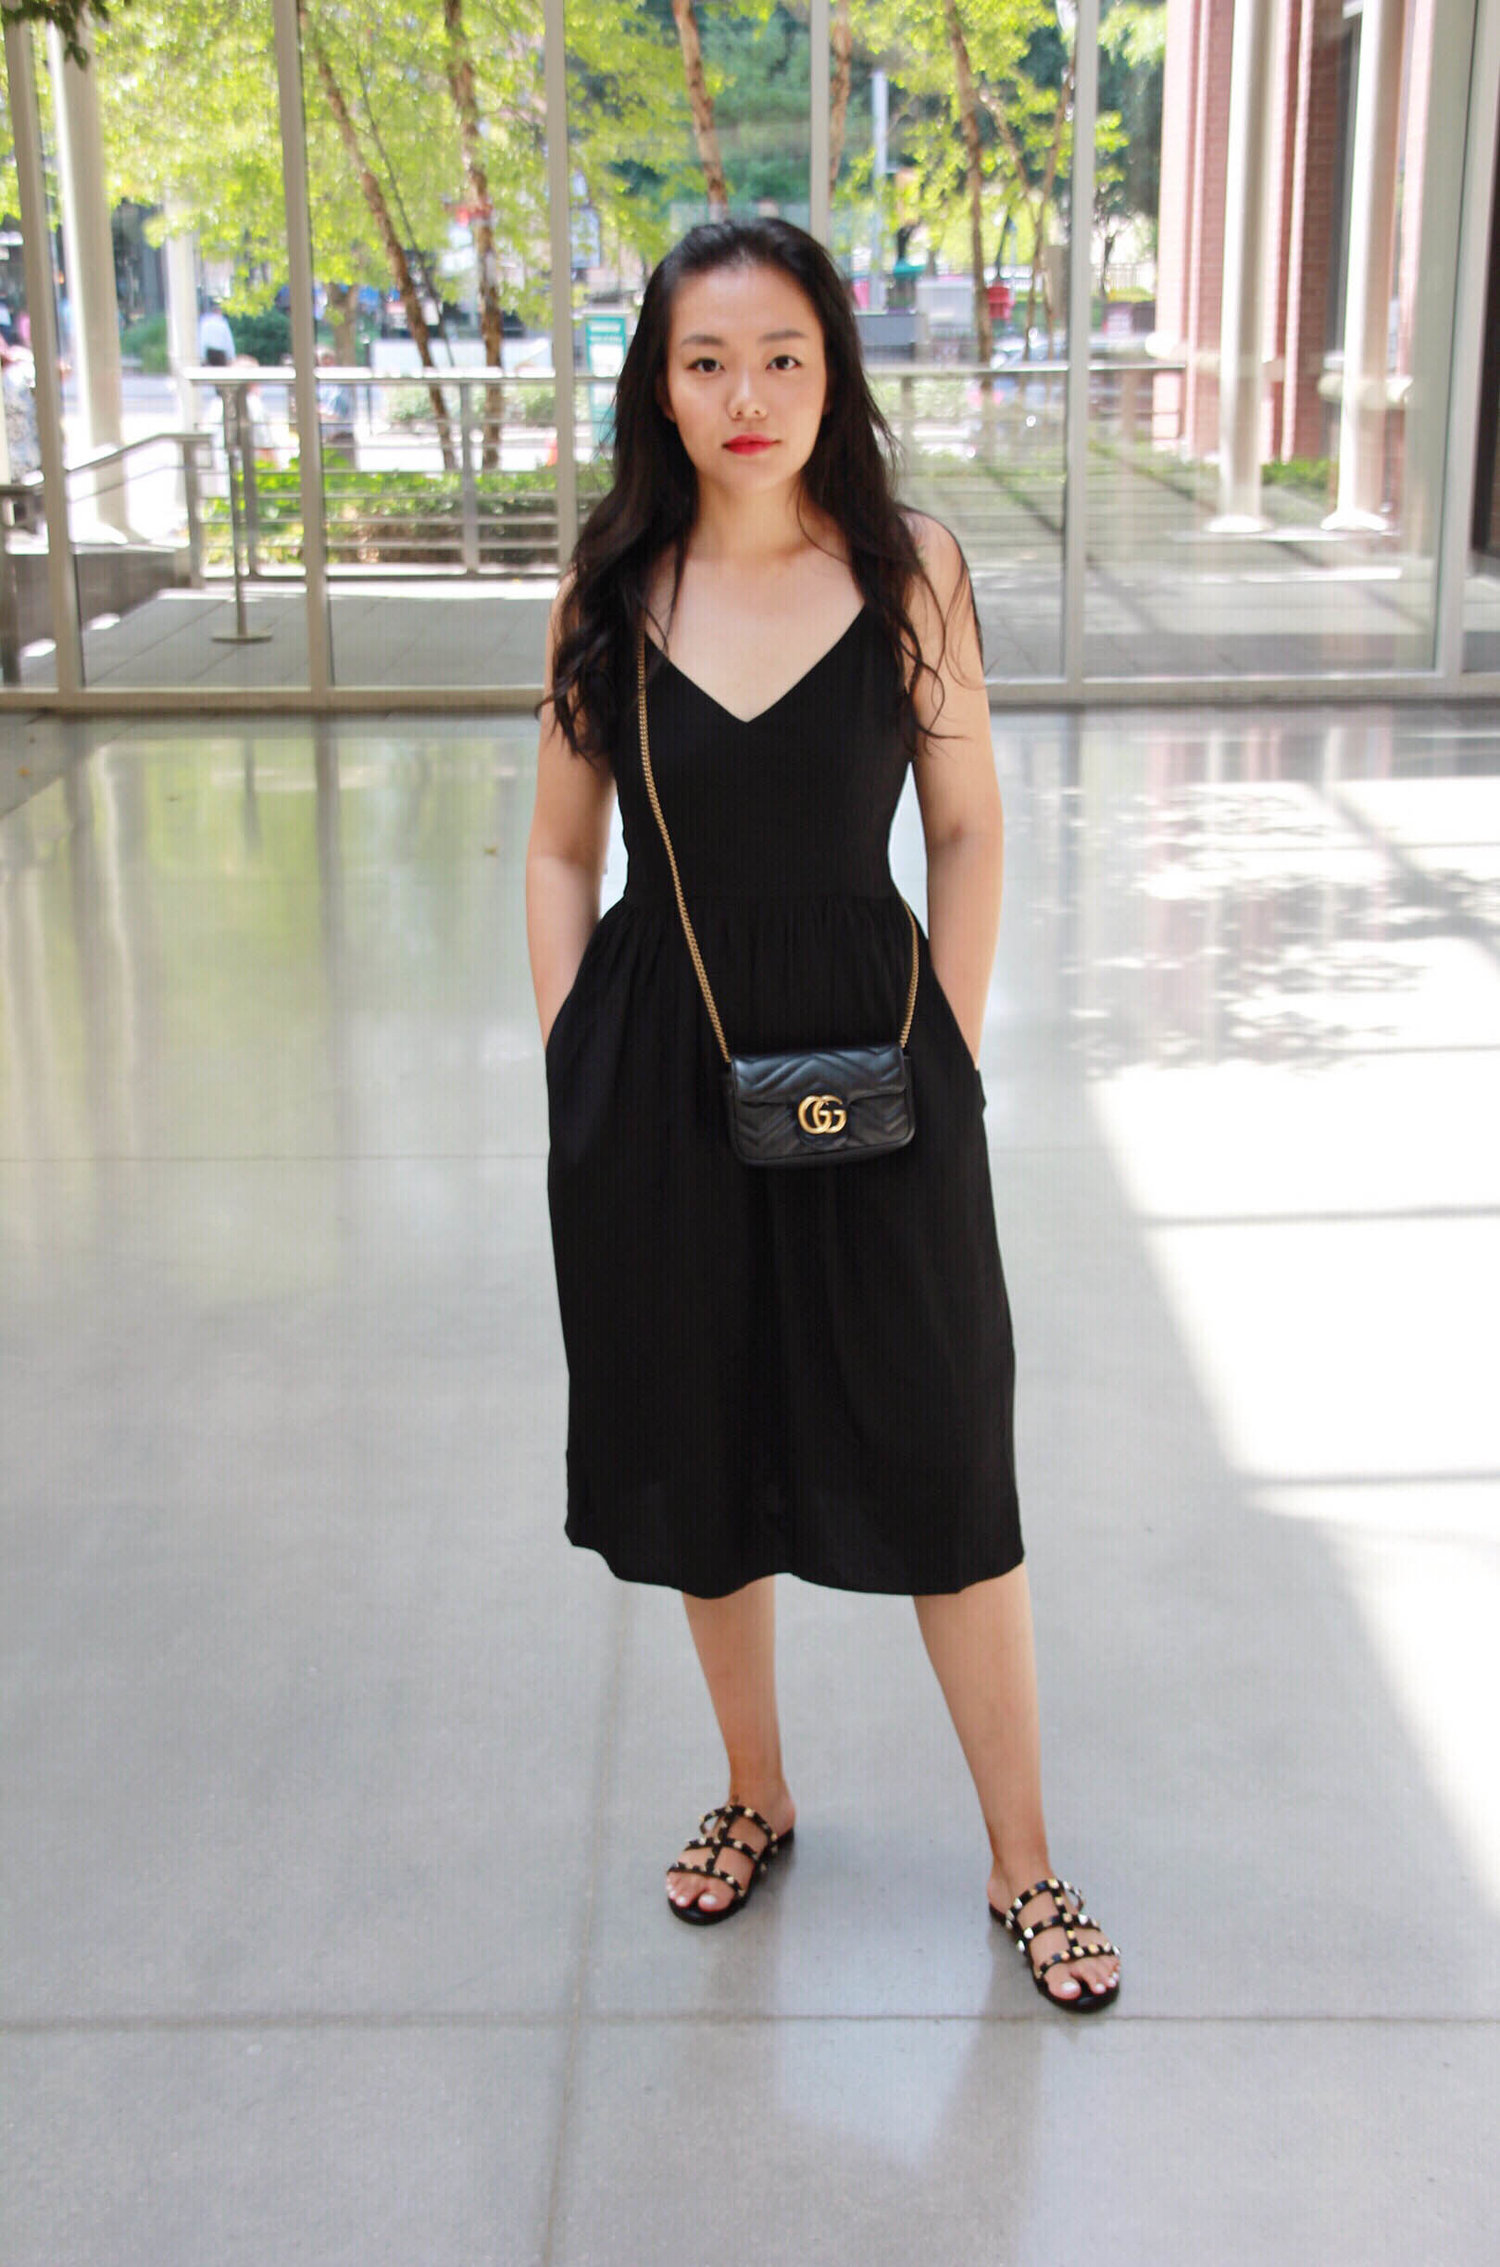 5d0a719220c1 how to make a black dress stand out, accessories for black dress